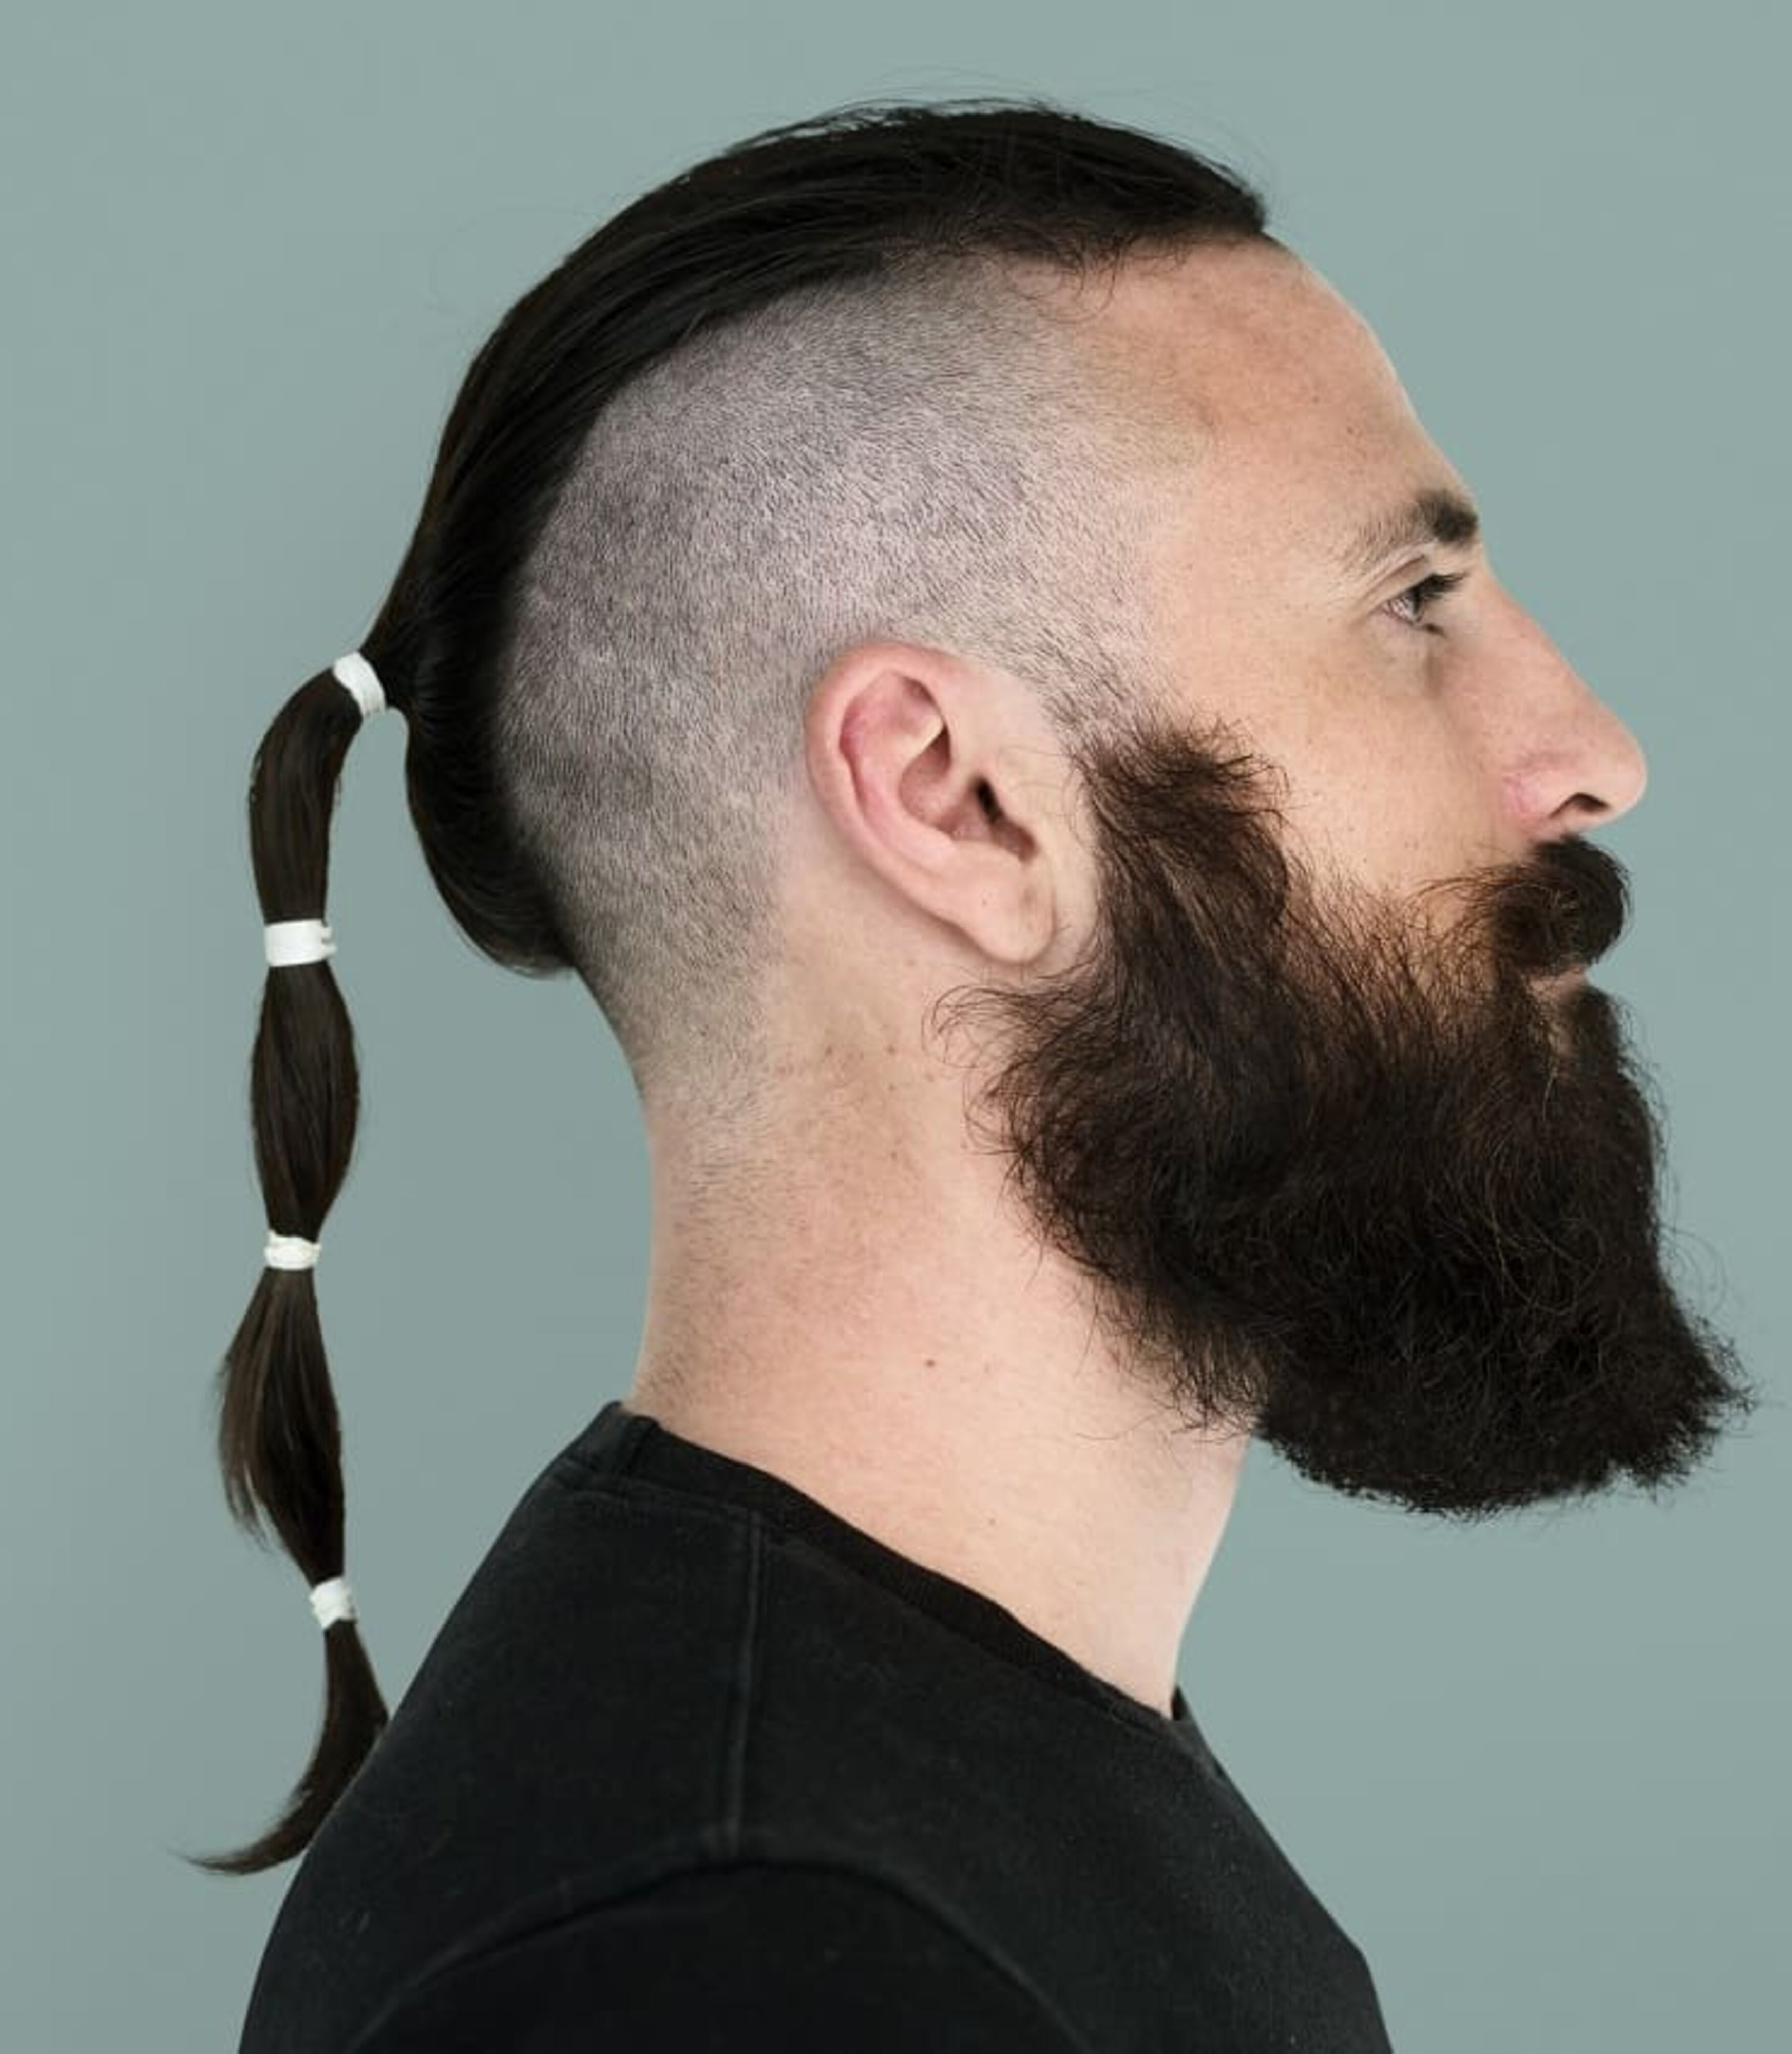 A long beard with a ponytail hairstyle.